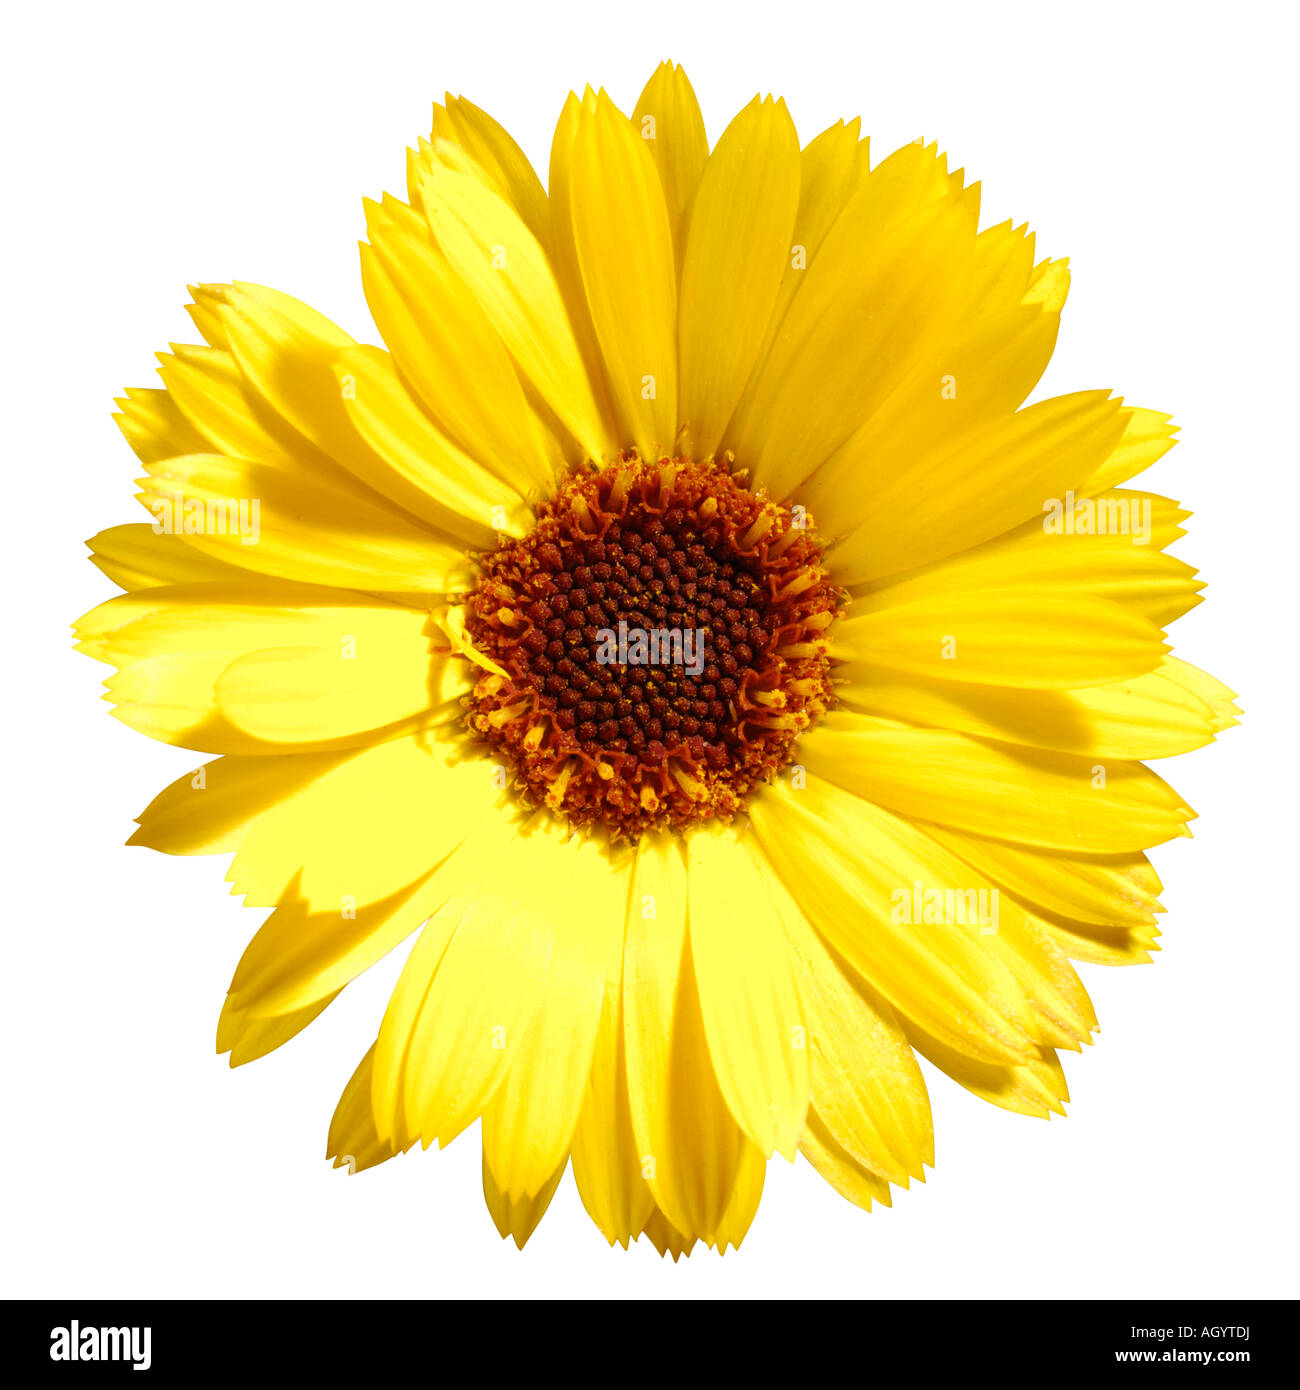 Yellow daisy type flower stock photo royalty free image 14311517 stock photo yellow daisy type flower dhlflorist Images